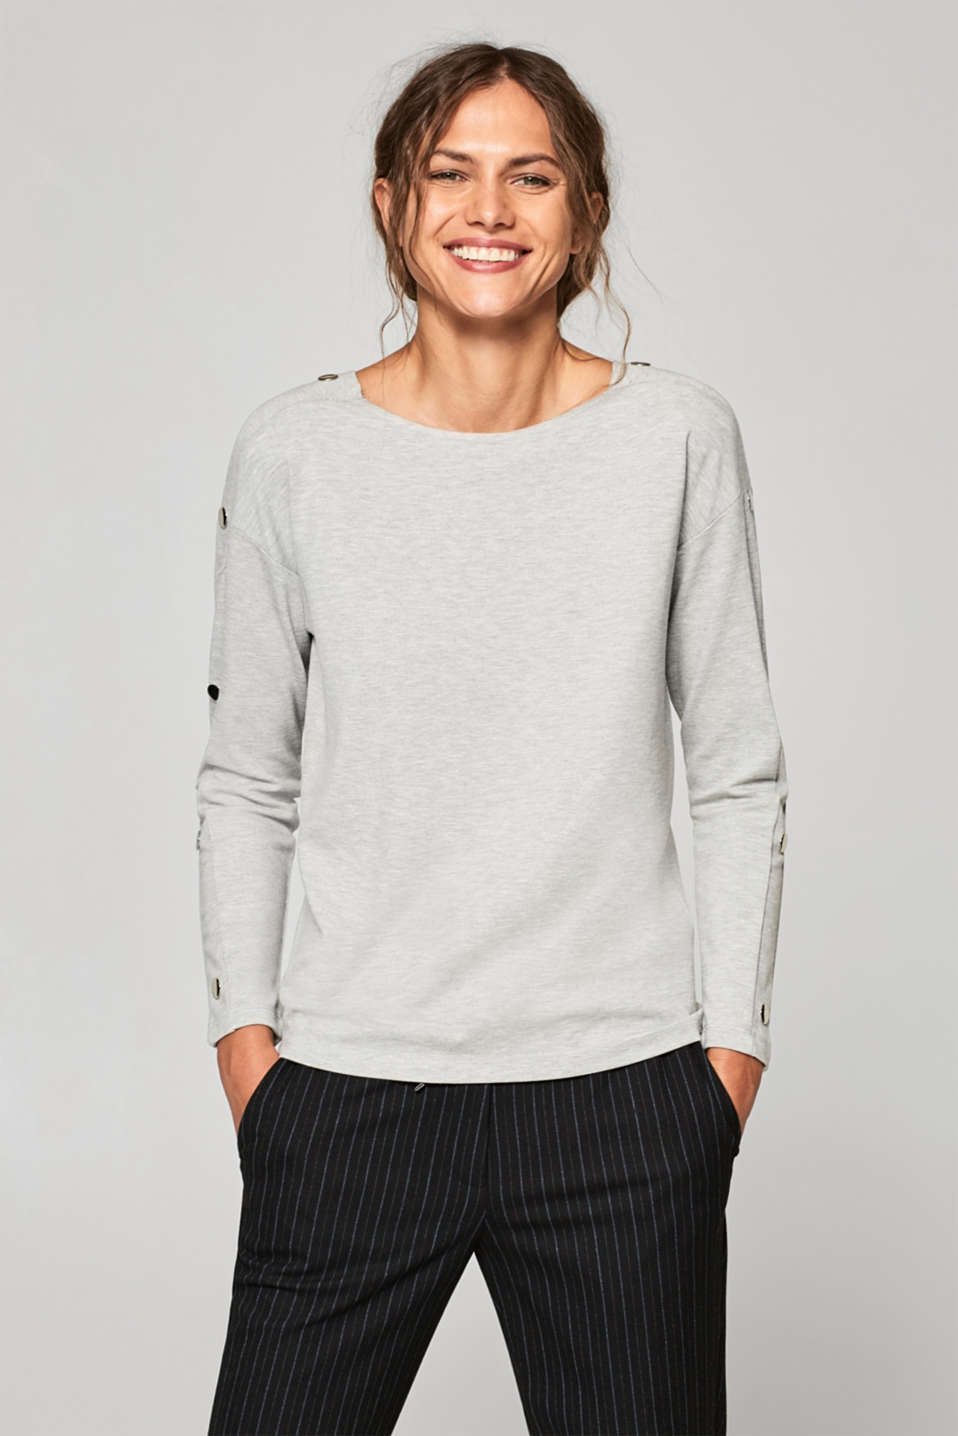 Esprit - Long sleeve top with decorative button plackets and stretch